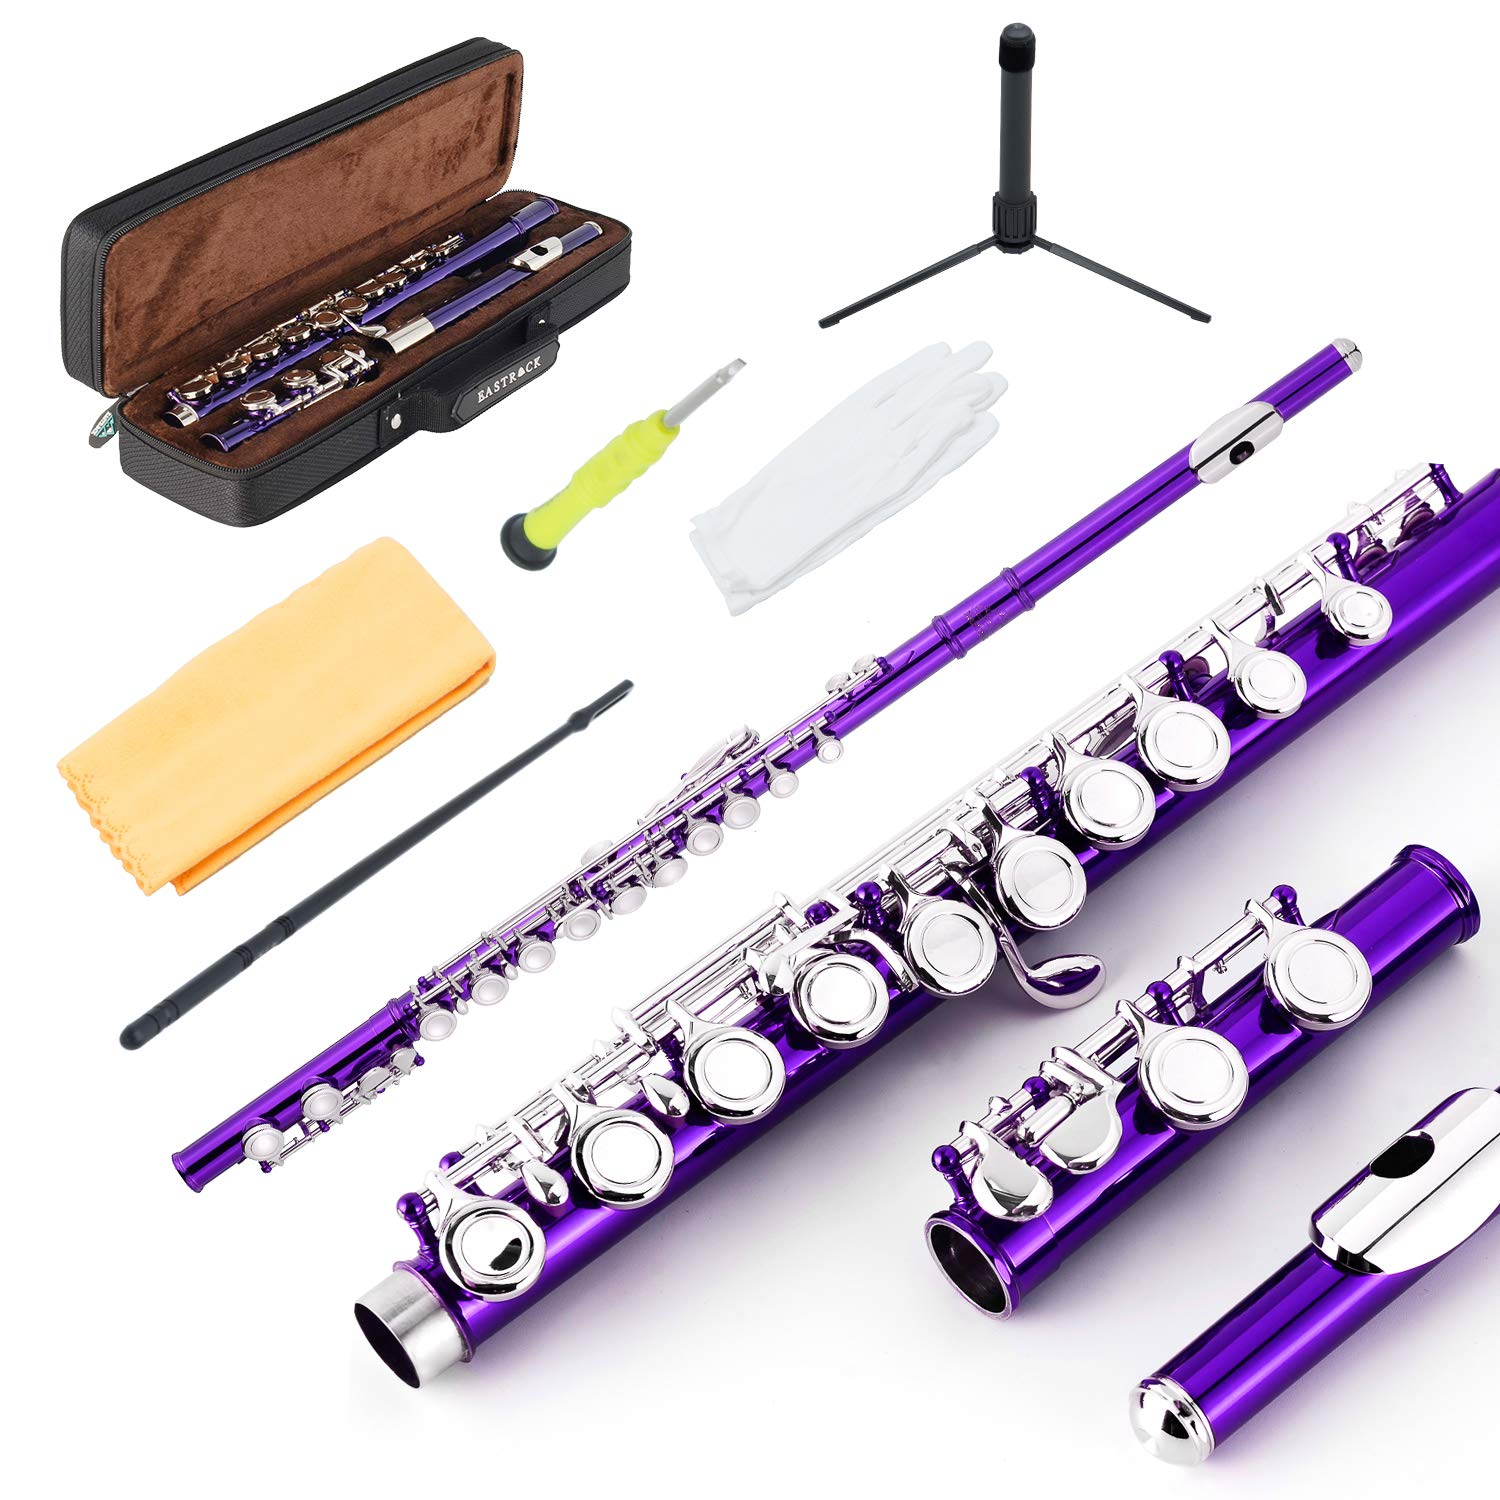 EastRock Closed Hole Flutes C 16 Key for Beginner, Kids, Student -Nickel Flute with Case Stand and Cleaning kit (Purple) by EastRock